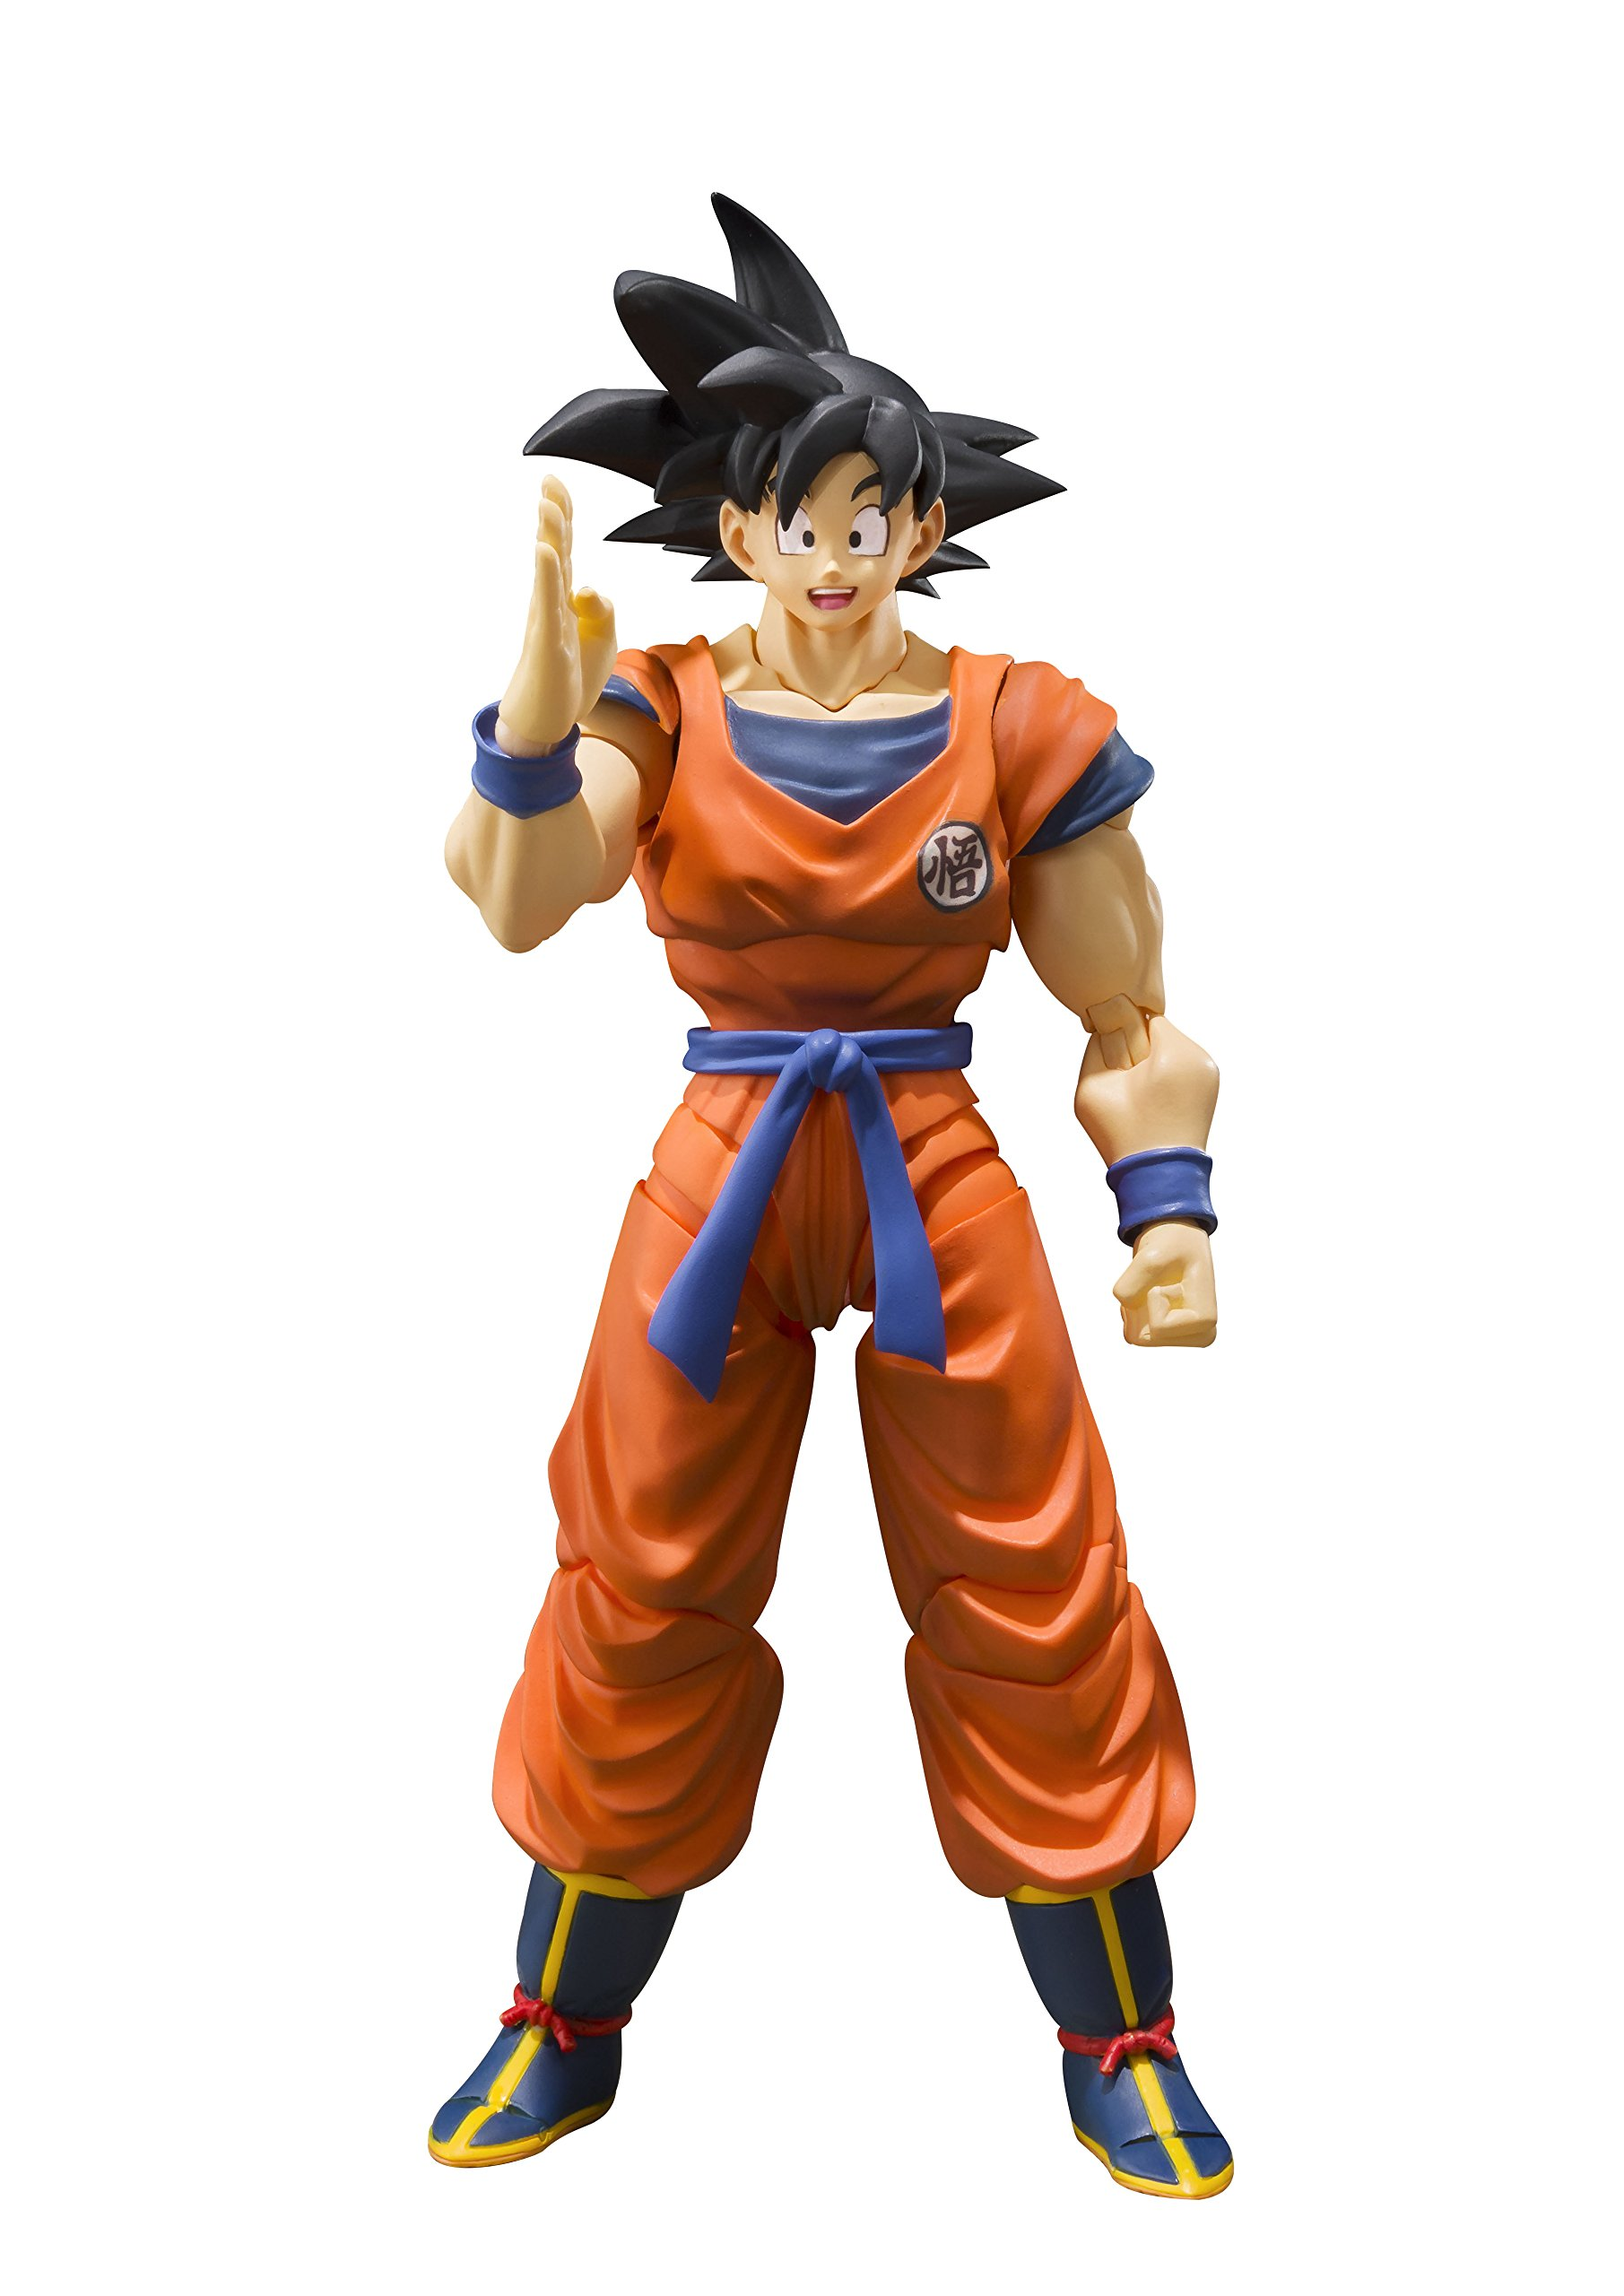 Bandai Tamashii Nations S.H. Figuarts Son Goku (A Saiyan Raised on Earth)''Dragon Ball Super'' Action Figure